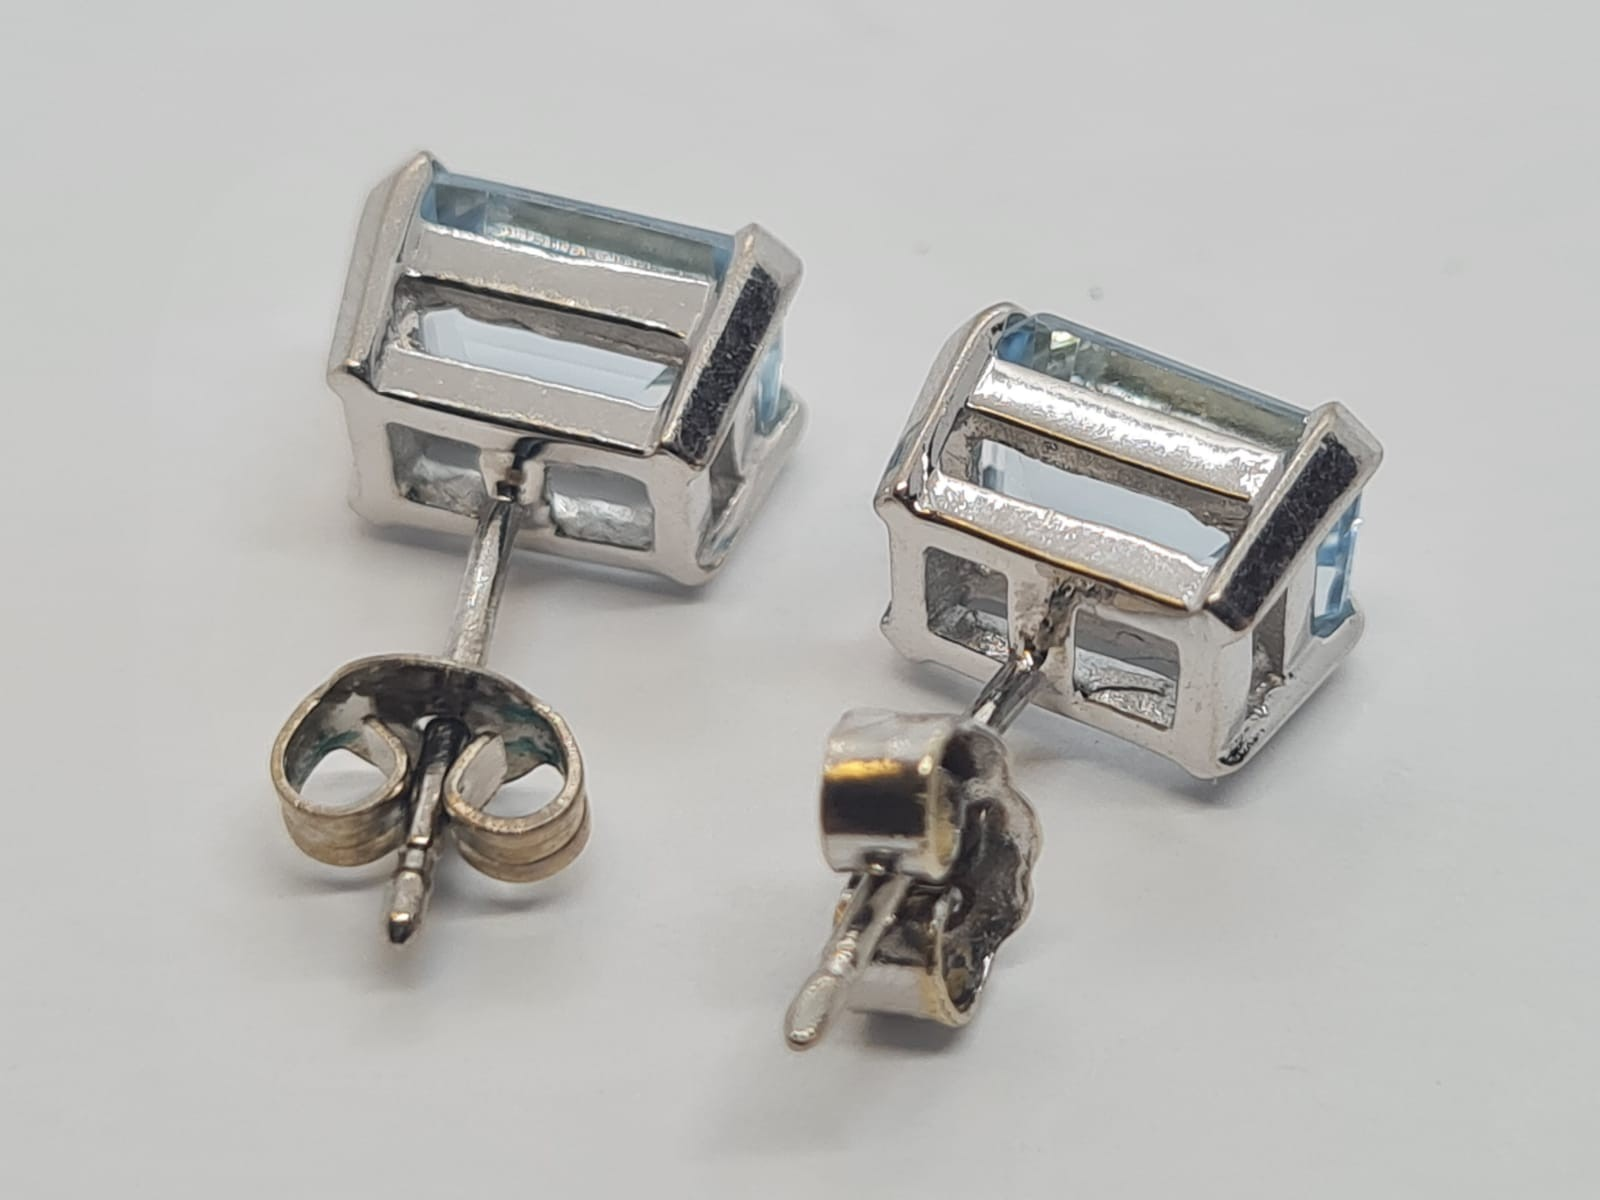 Pair of aquamarine stud earrings set in 18k white gold, weight 3.3g - Image 3 of 4